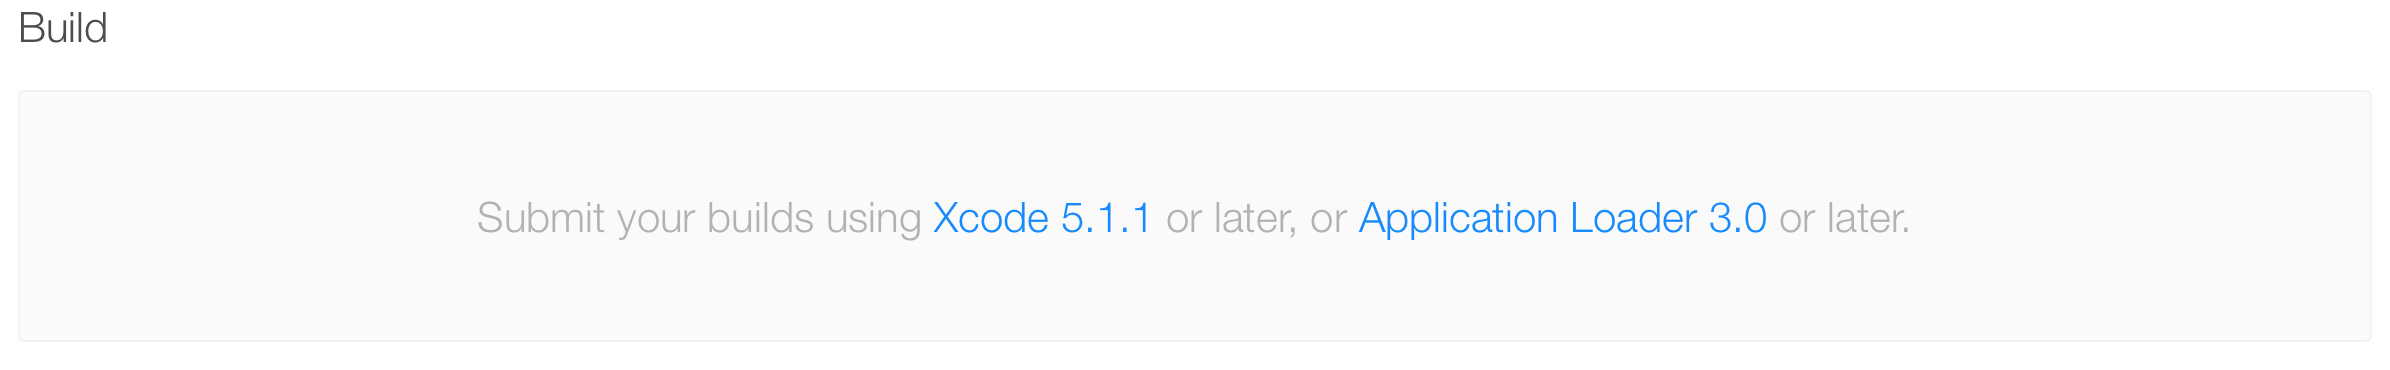 I've submitted the archive to apple via Xcode, but the